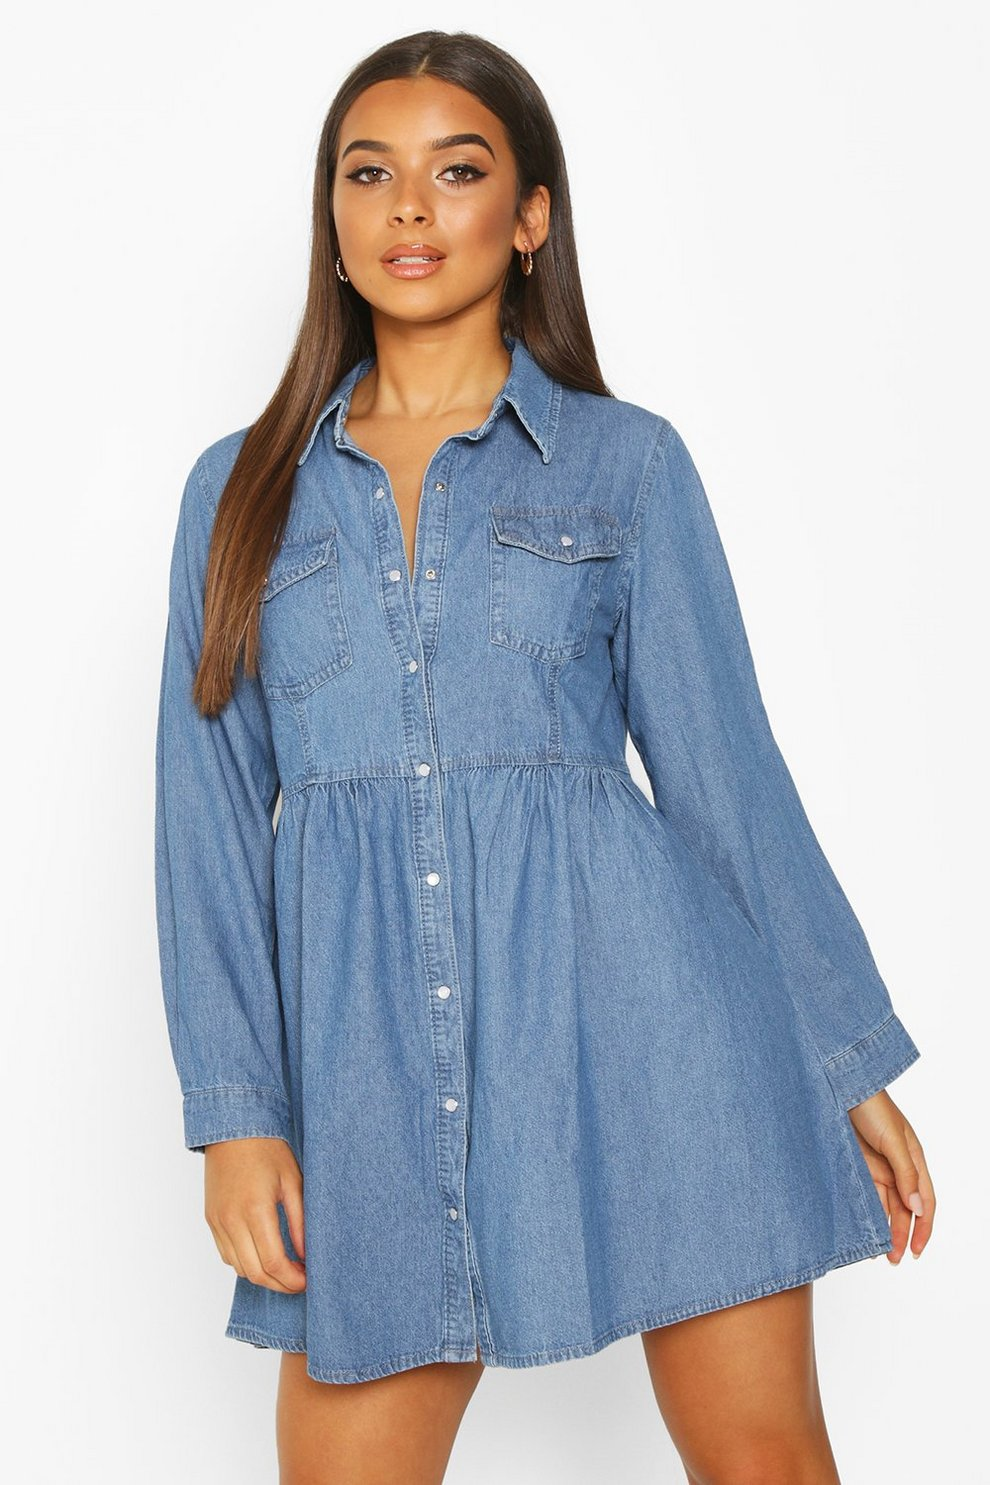 Boohoo Long Sleeve Denim Shirt Dress Best Sale Cheap Price Comfortable Cheap Price Release Dates For Sale Free Shipping 100% Authentic lji60c